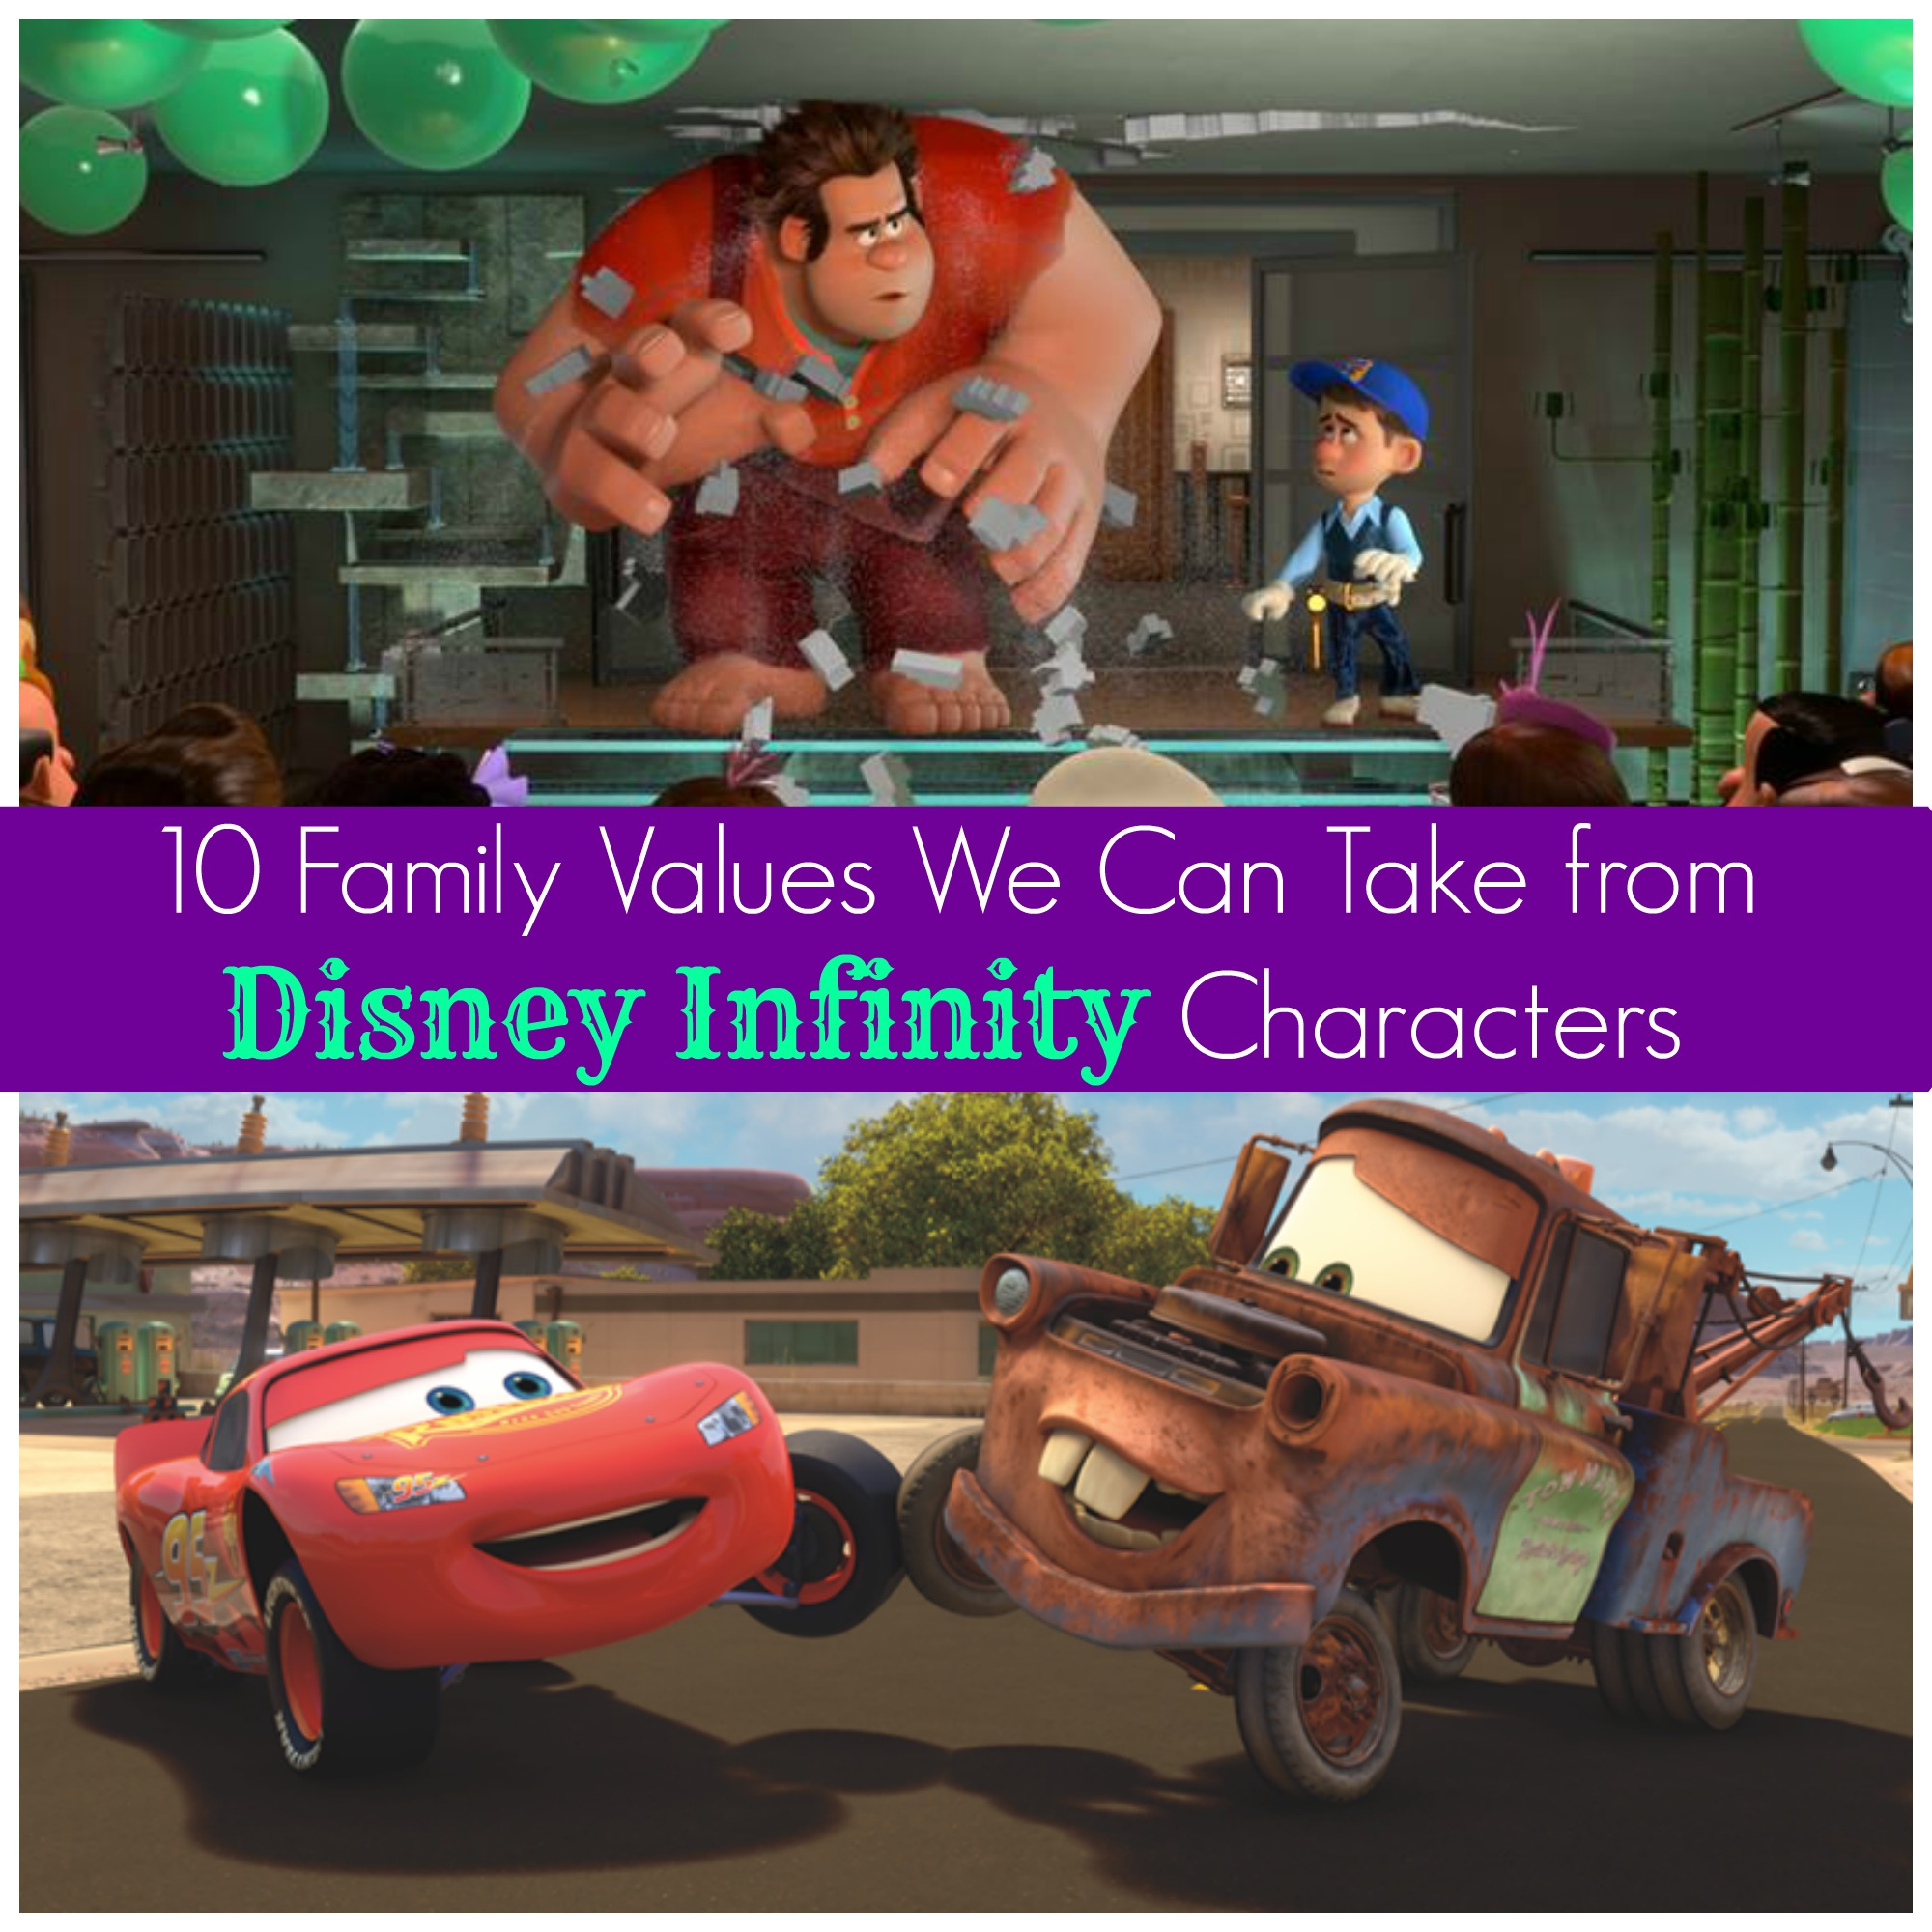 teaching-family-values-through-disney-infinity-characters